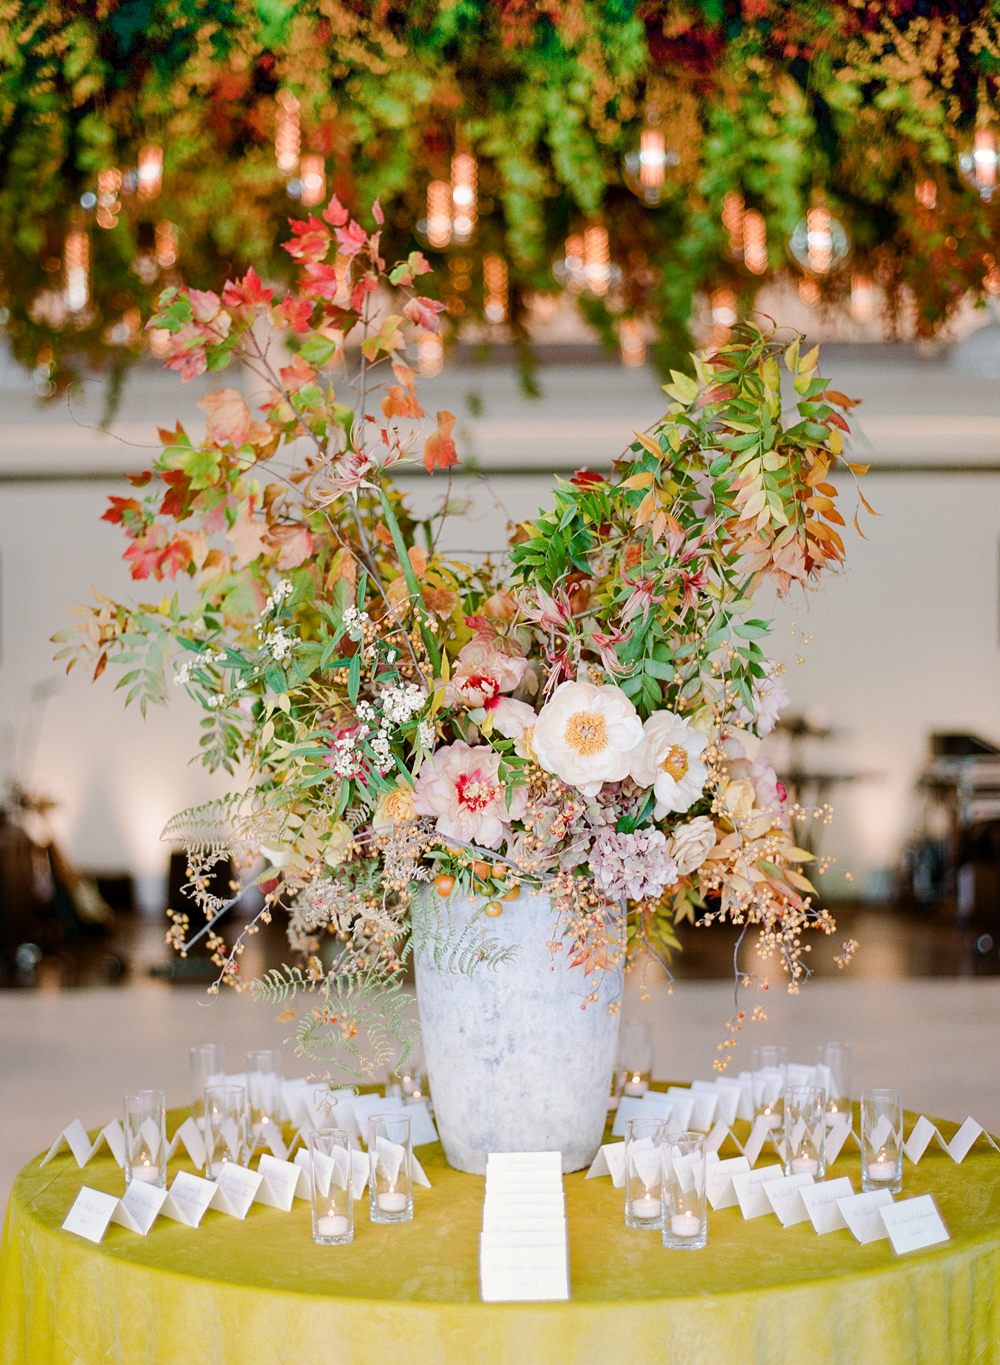 stone vase centerpiece on yellow tablecloth